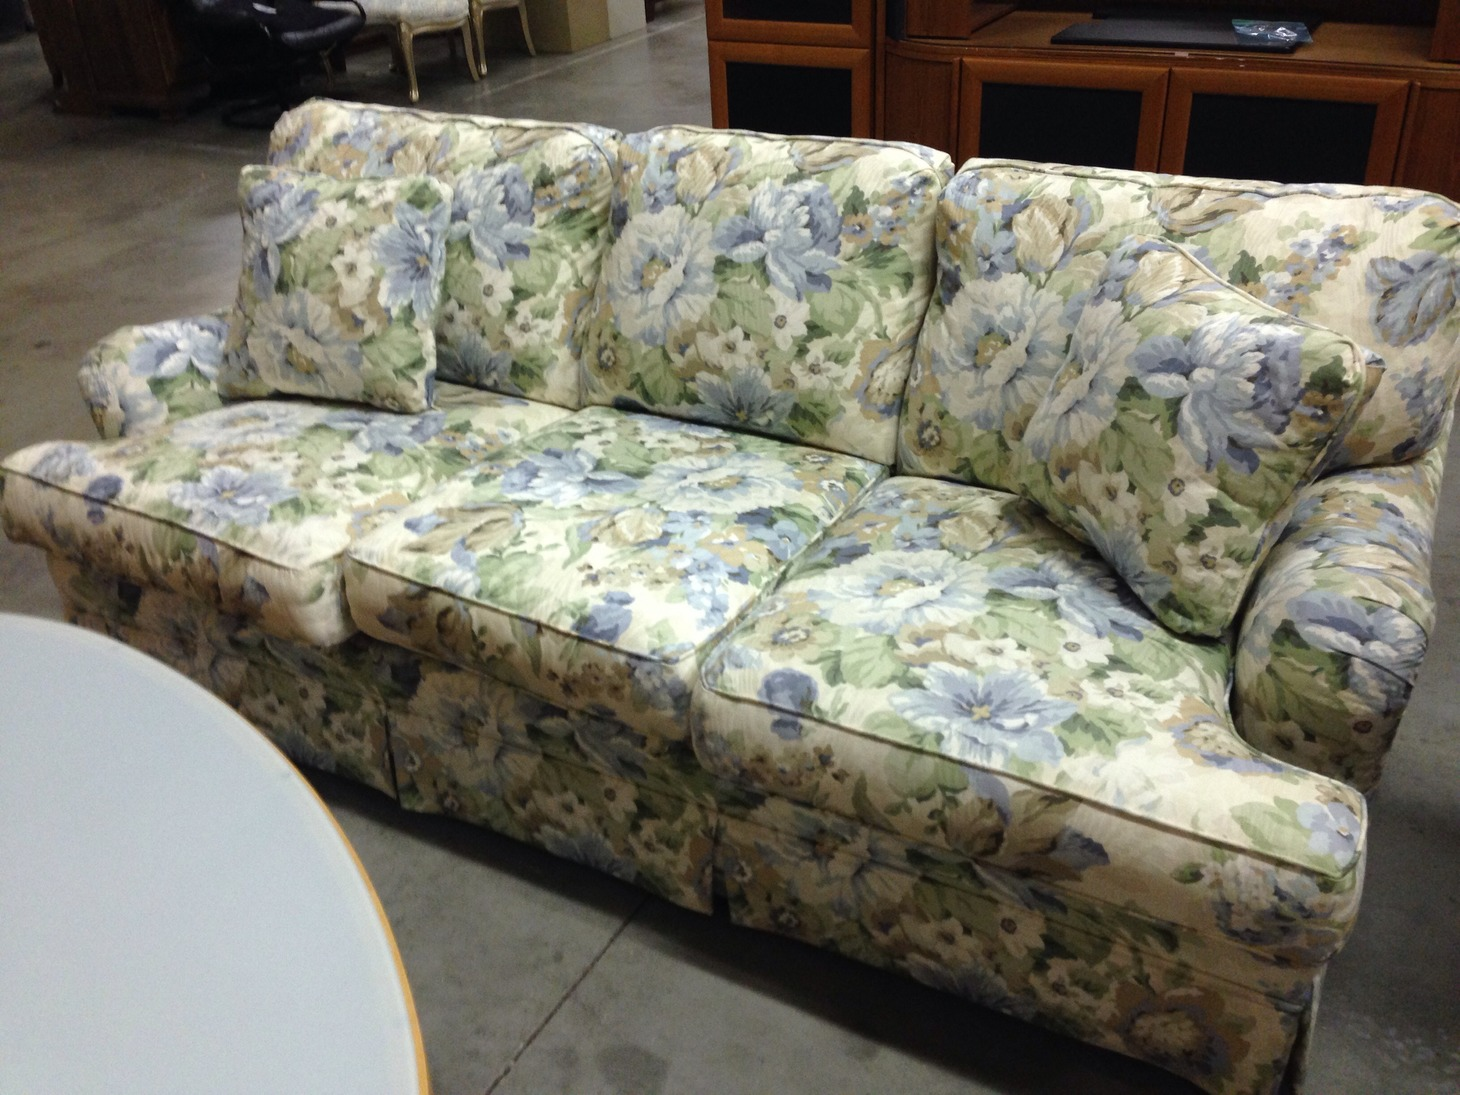 schnadig of below to underside sale slight wear floral online enlarge auctions chico norcal on cushions couch photos click liquidation estate lot sales redding sofa spots